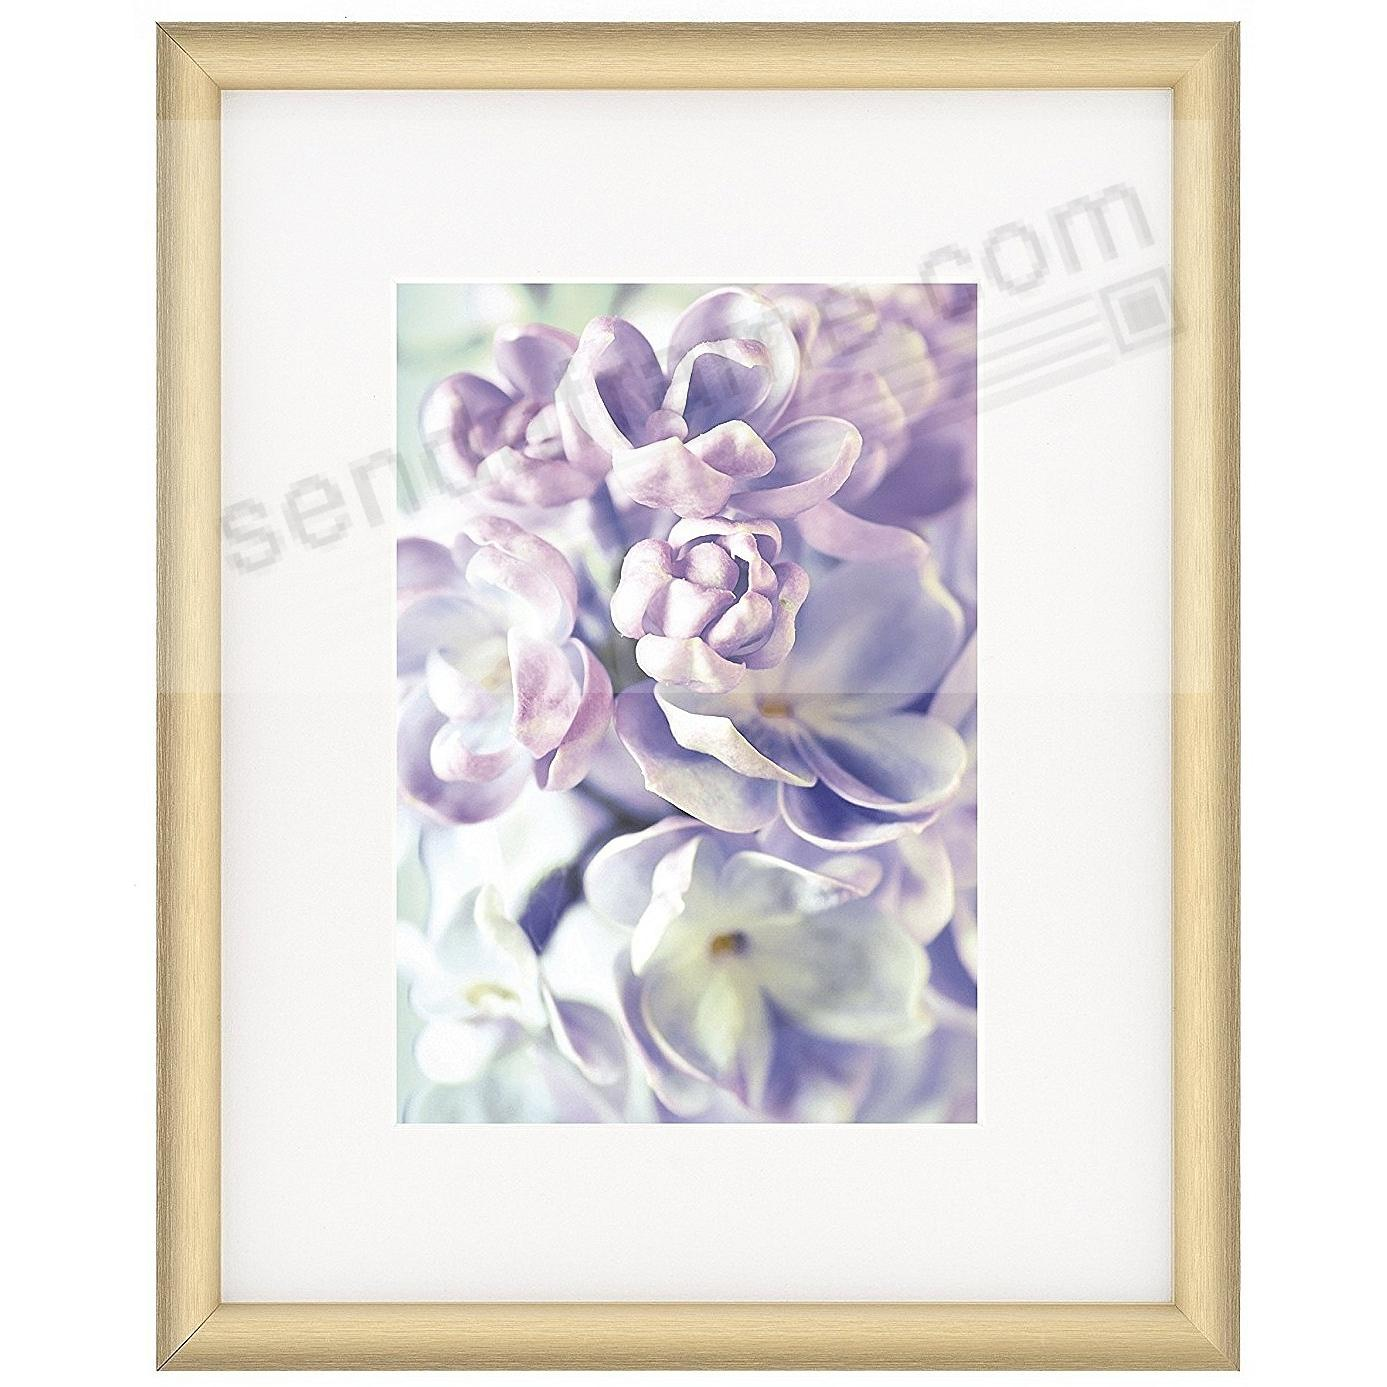 Satin-Gold COSMOPOLITAN matted metallic frame 5x7/8x10 from ARTCARE® by Nielsen®